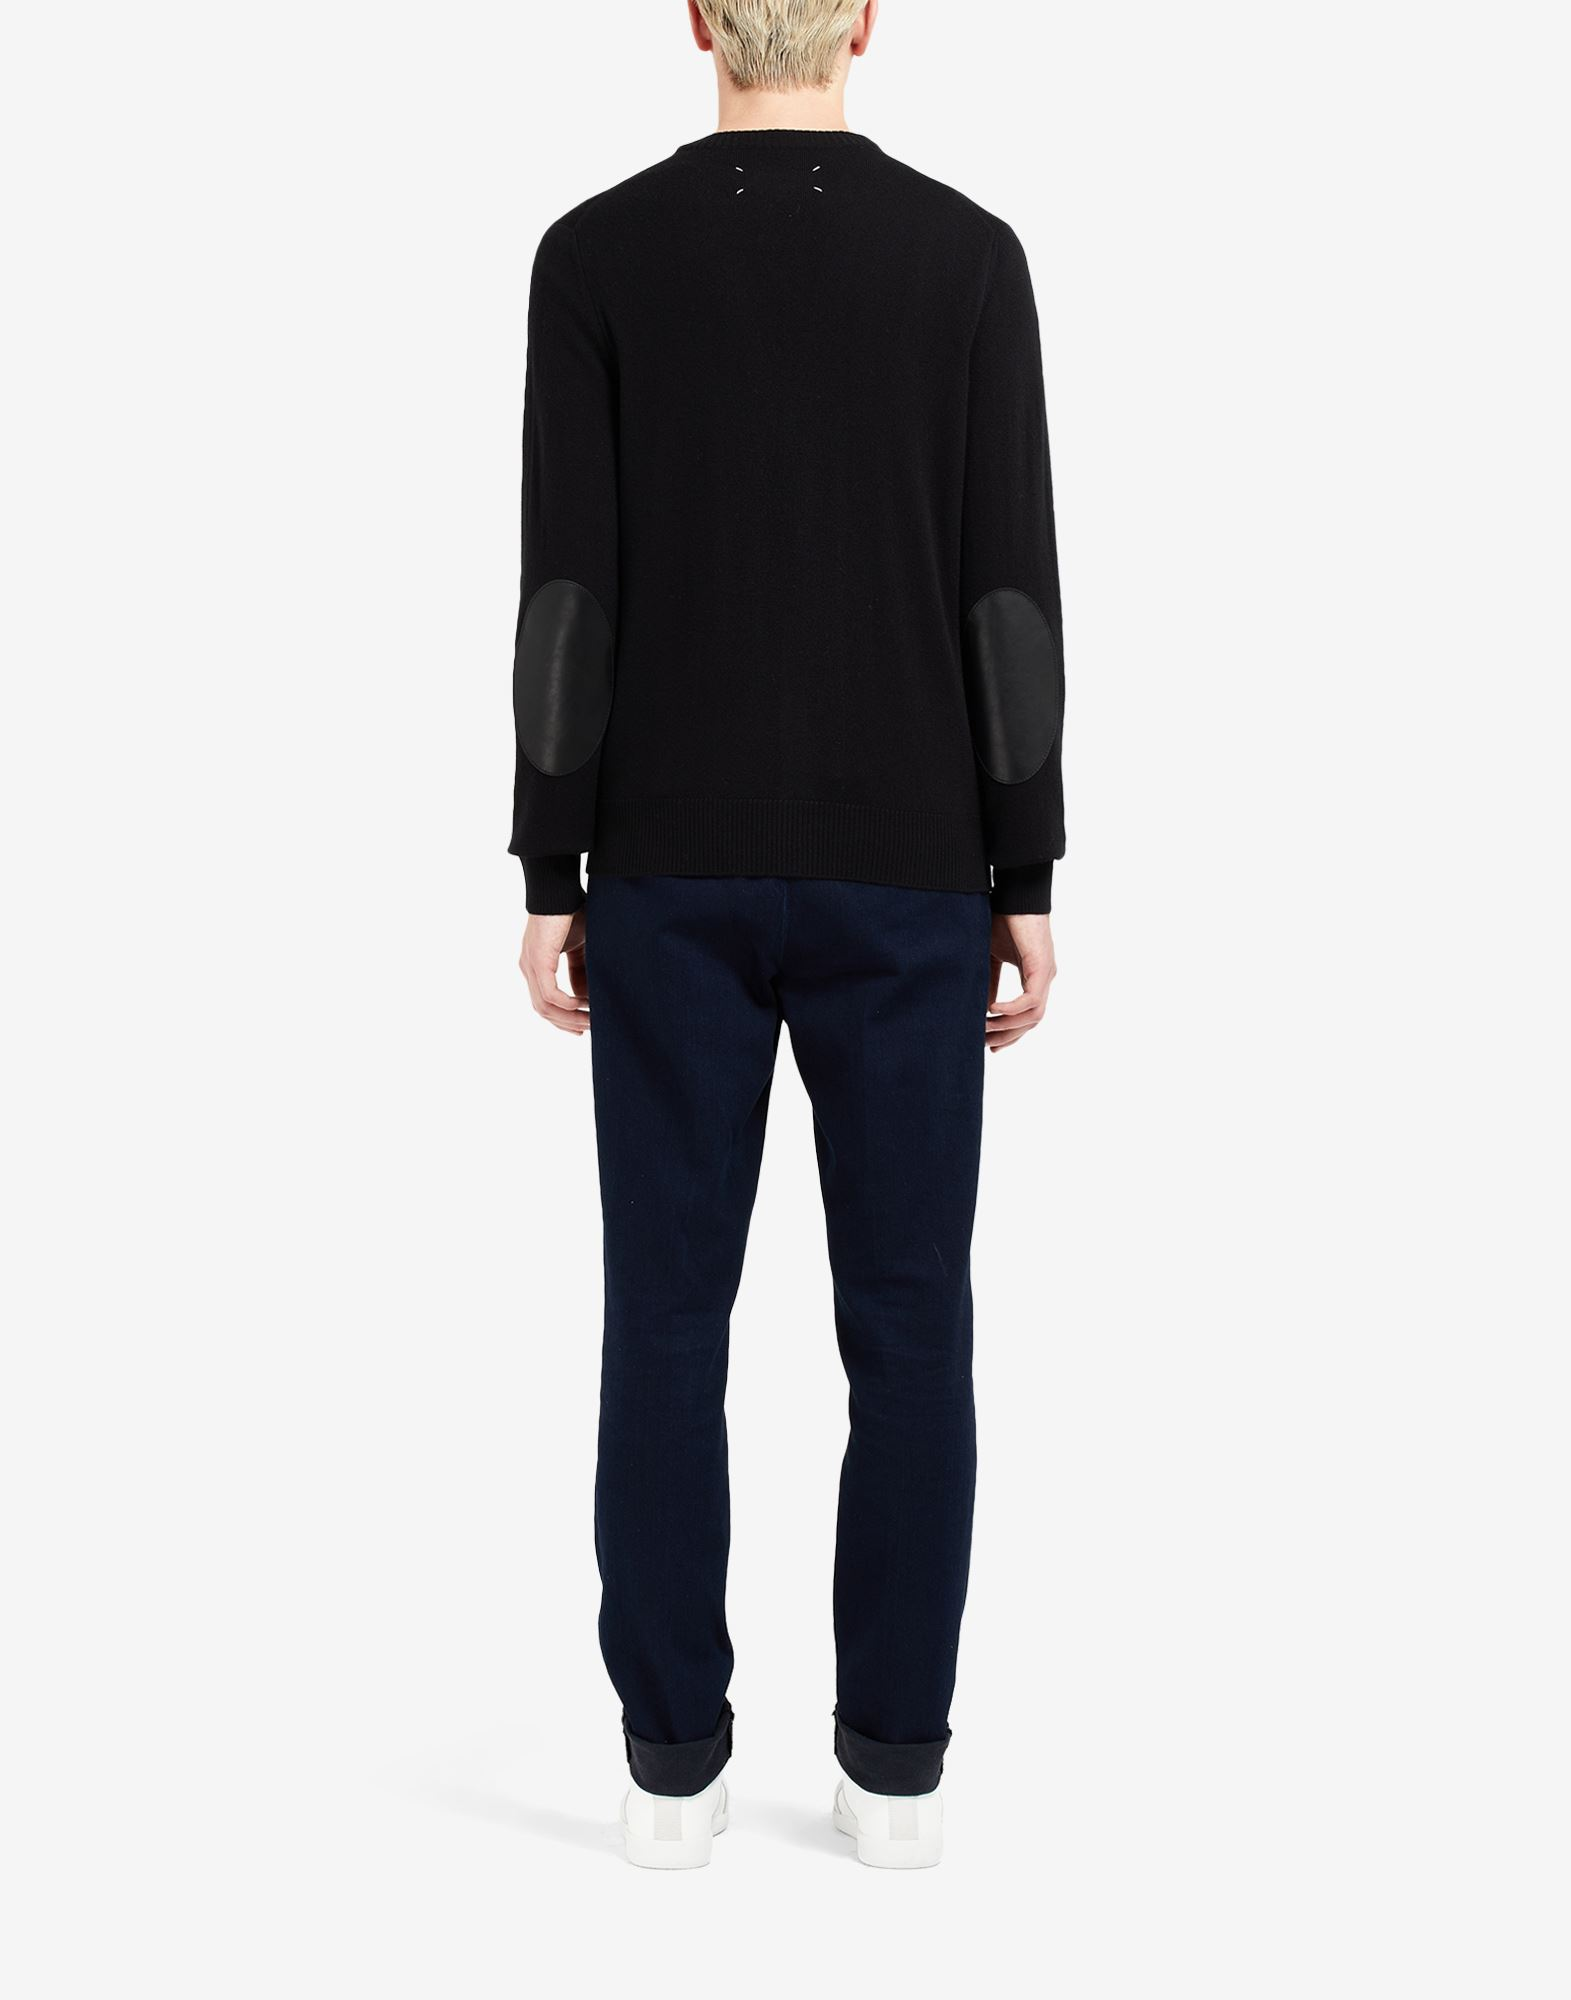 MAISON MARGIELA Leather elbow patch cardigan Cardigan Man e